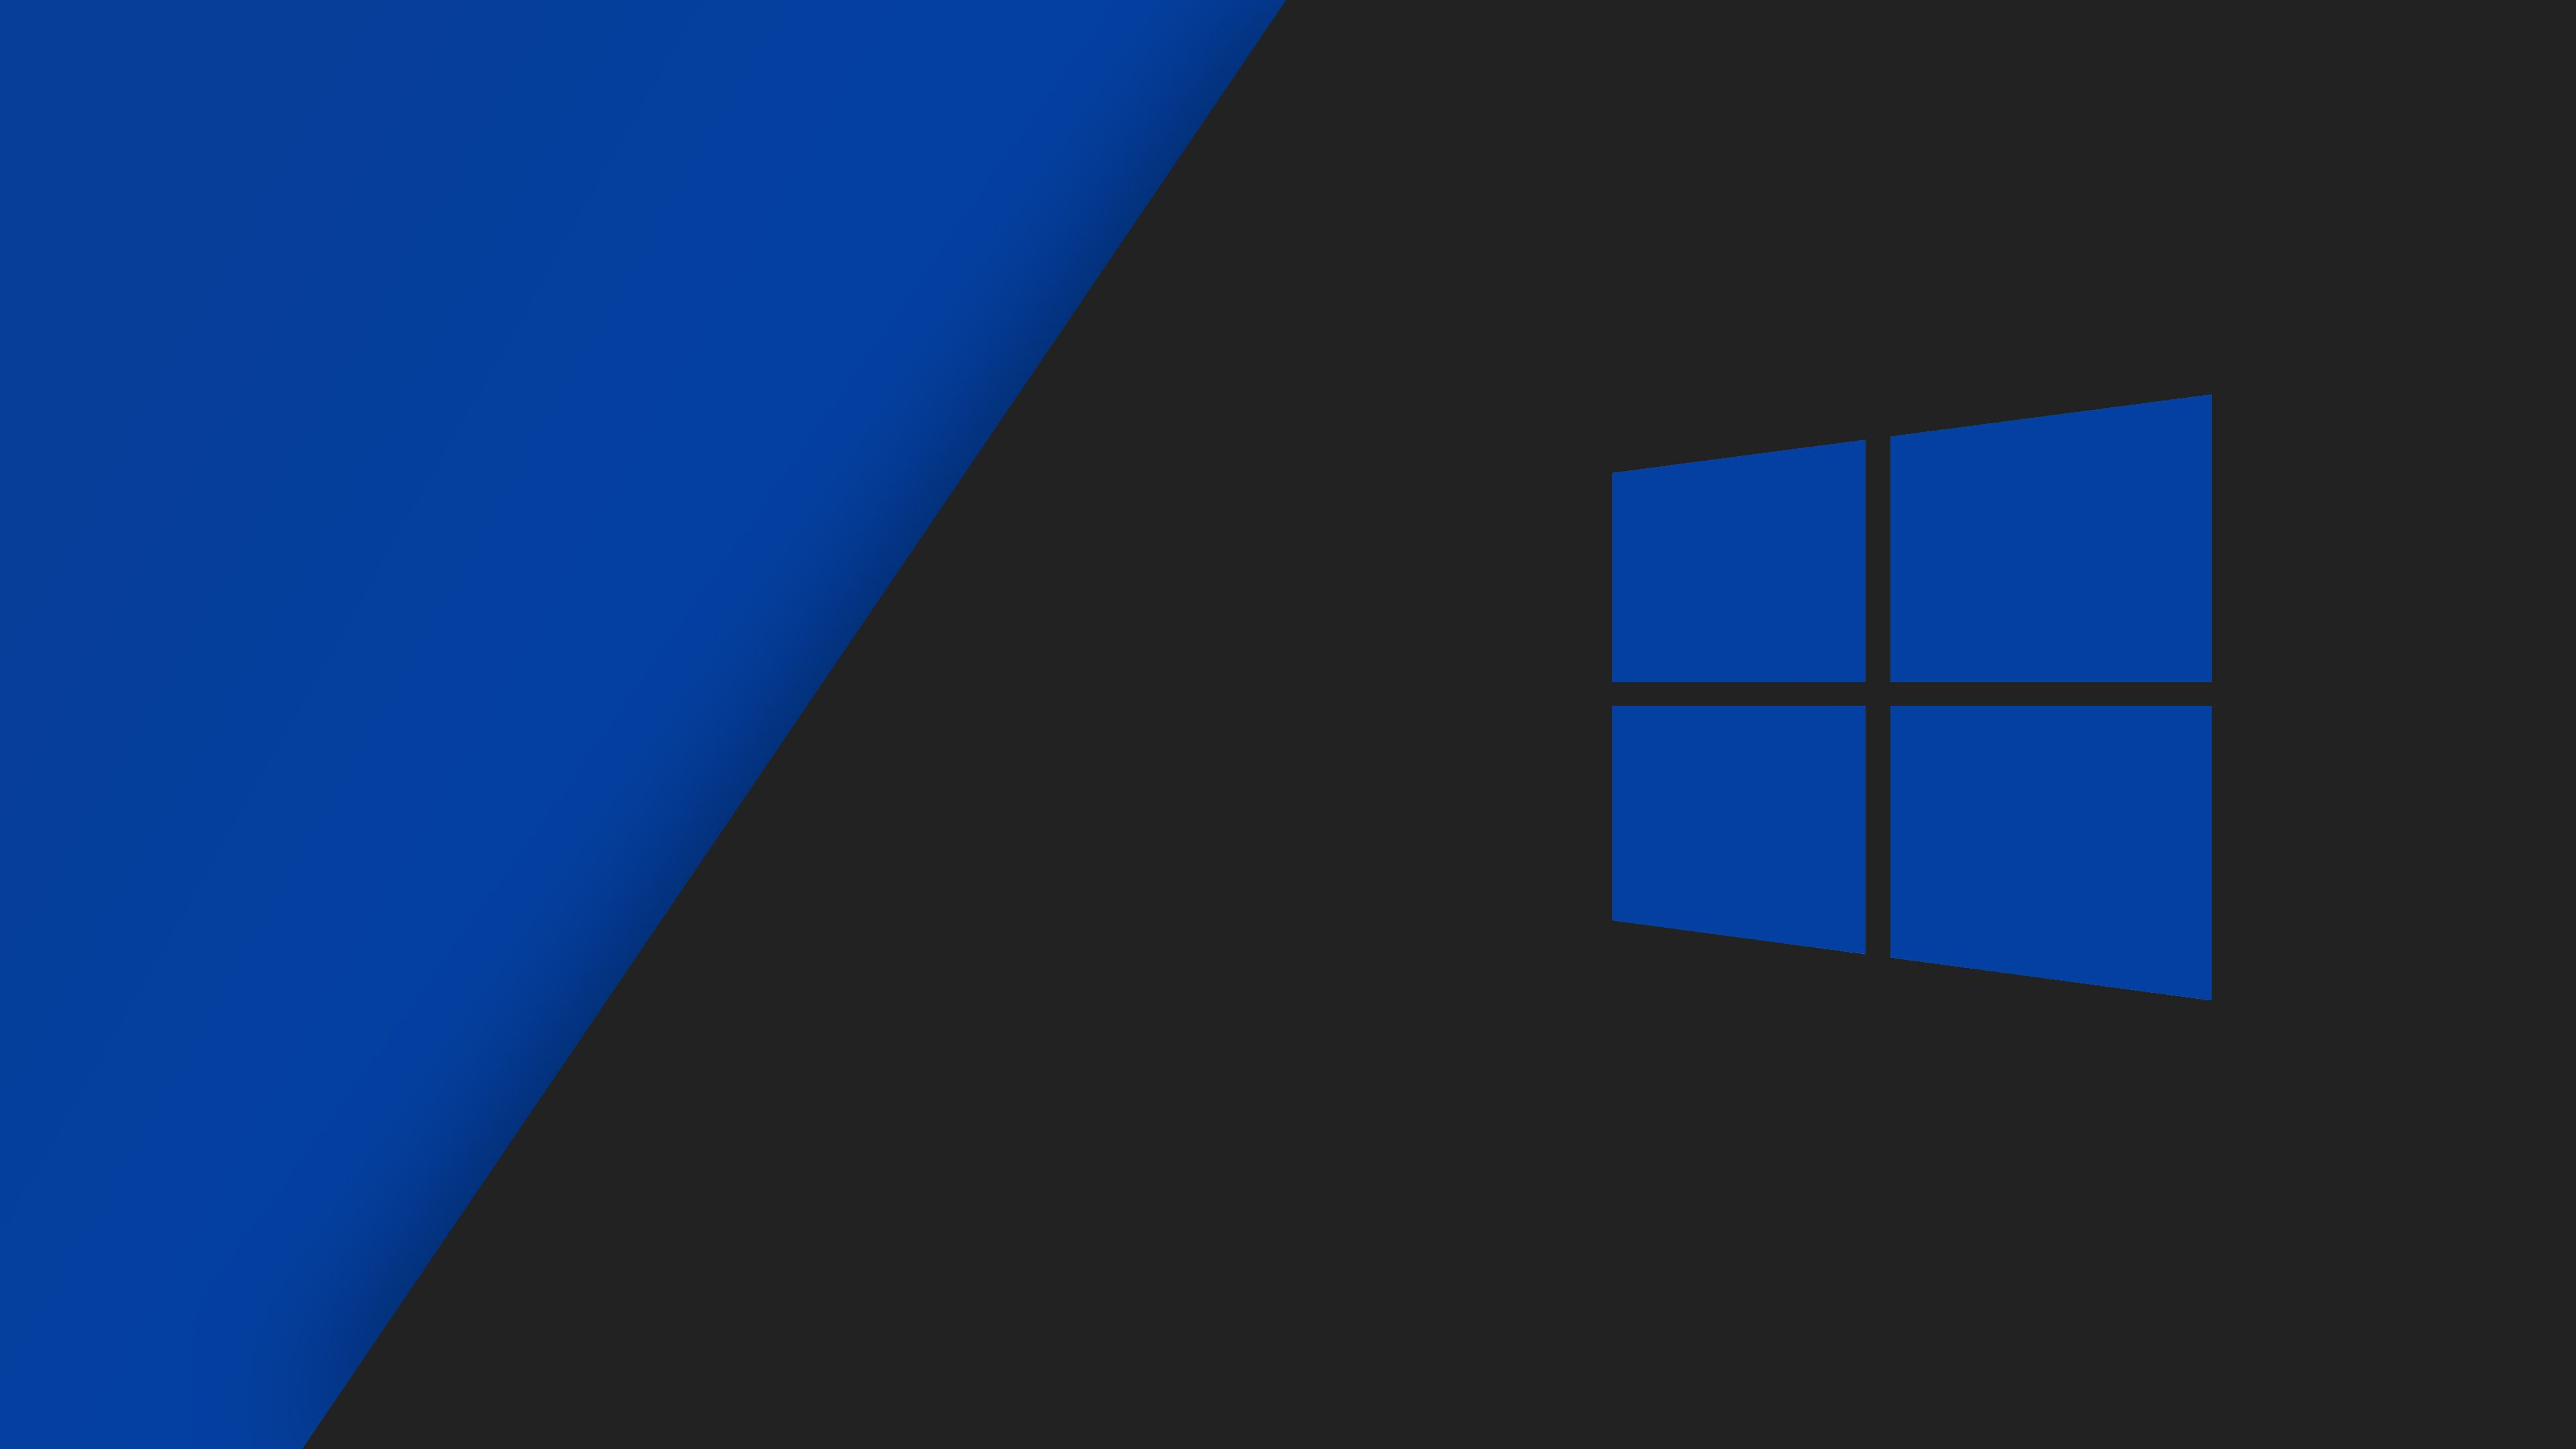 windows 10 wallpaper hd desktop backgrounds